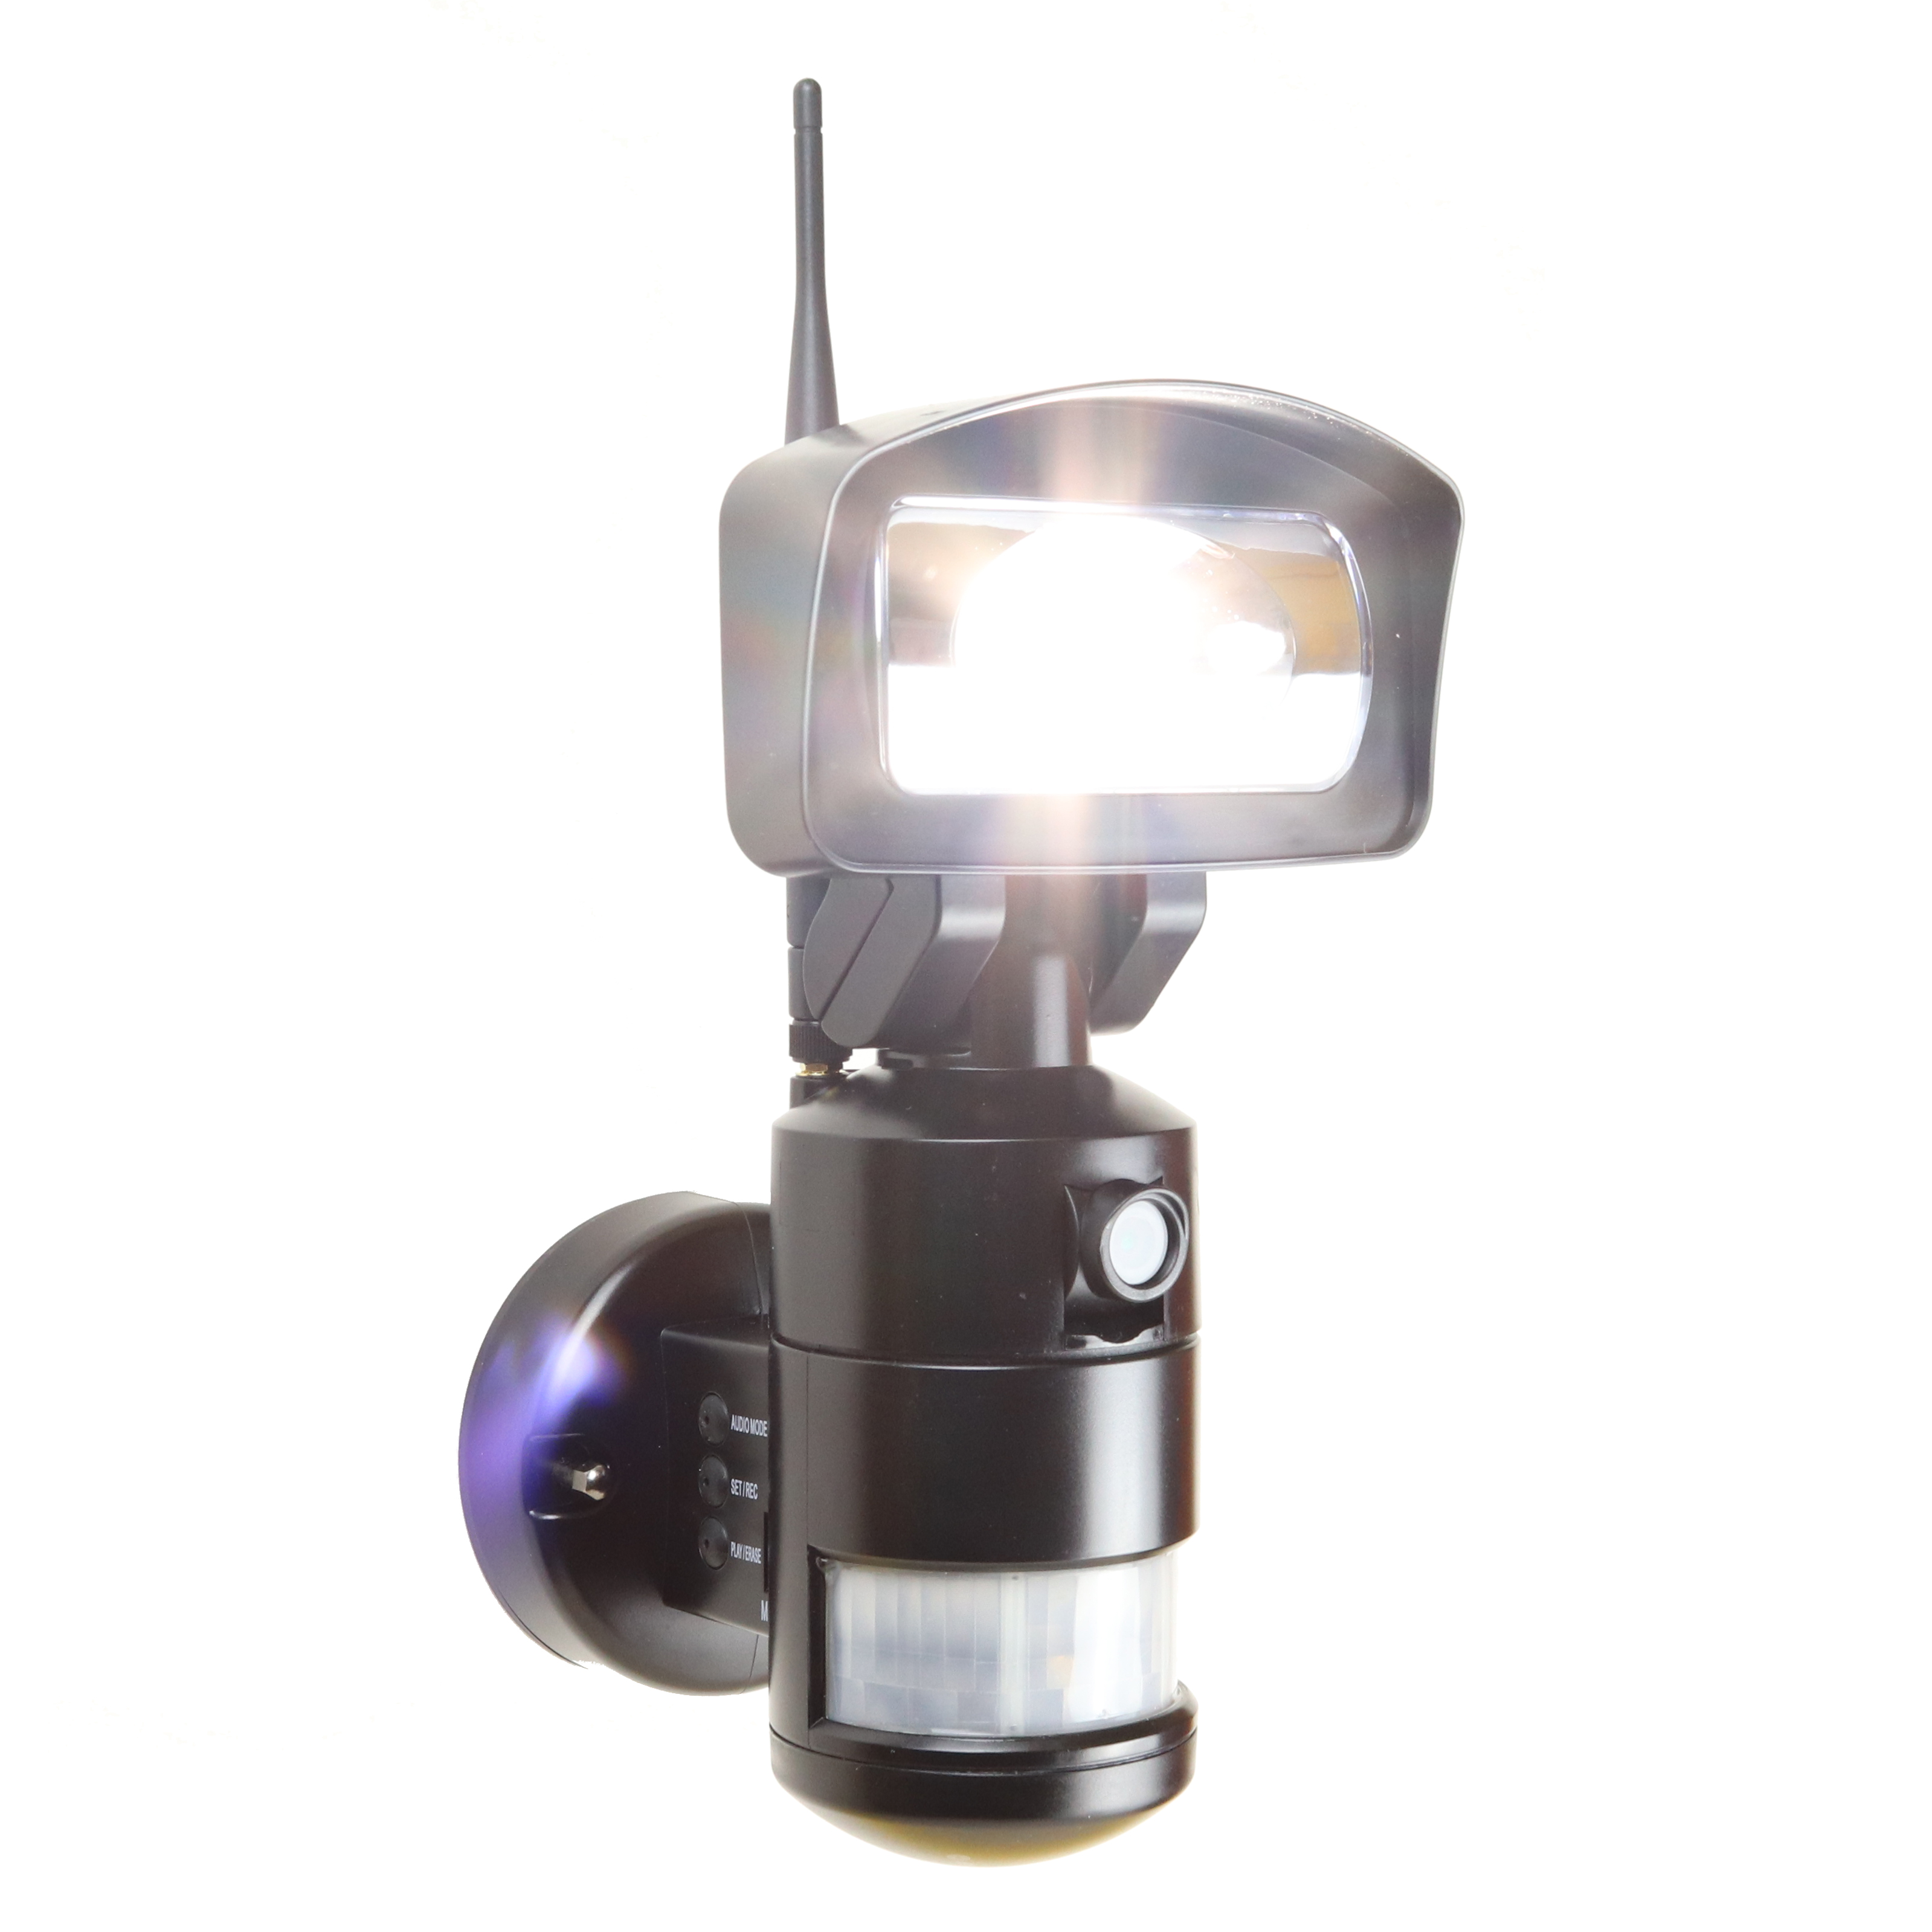 NightWatcher LED Robotic Security Light With WiFi & HD